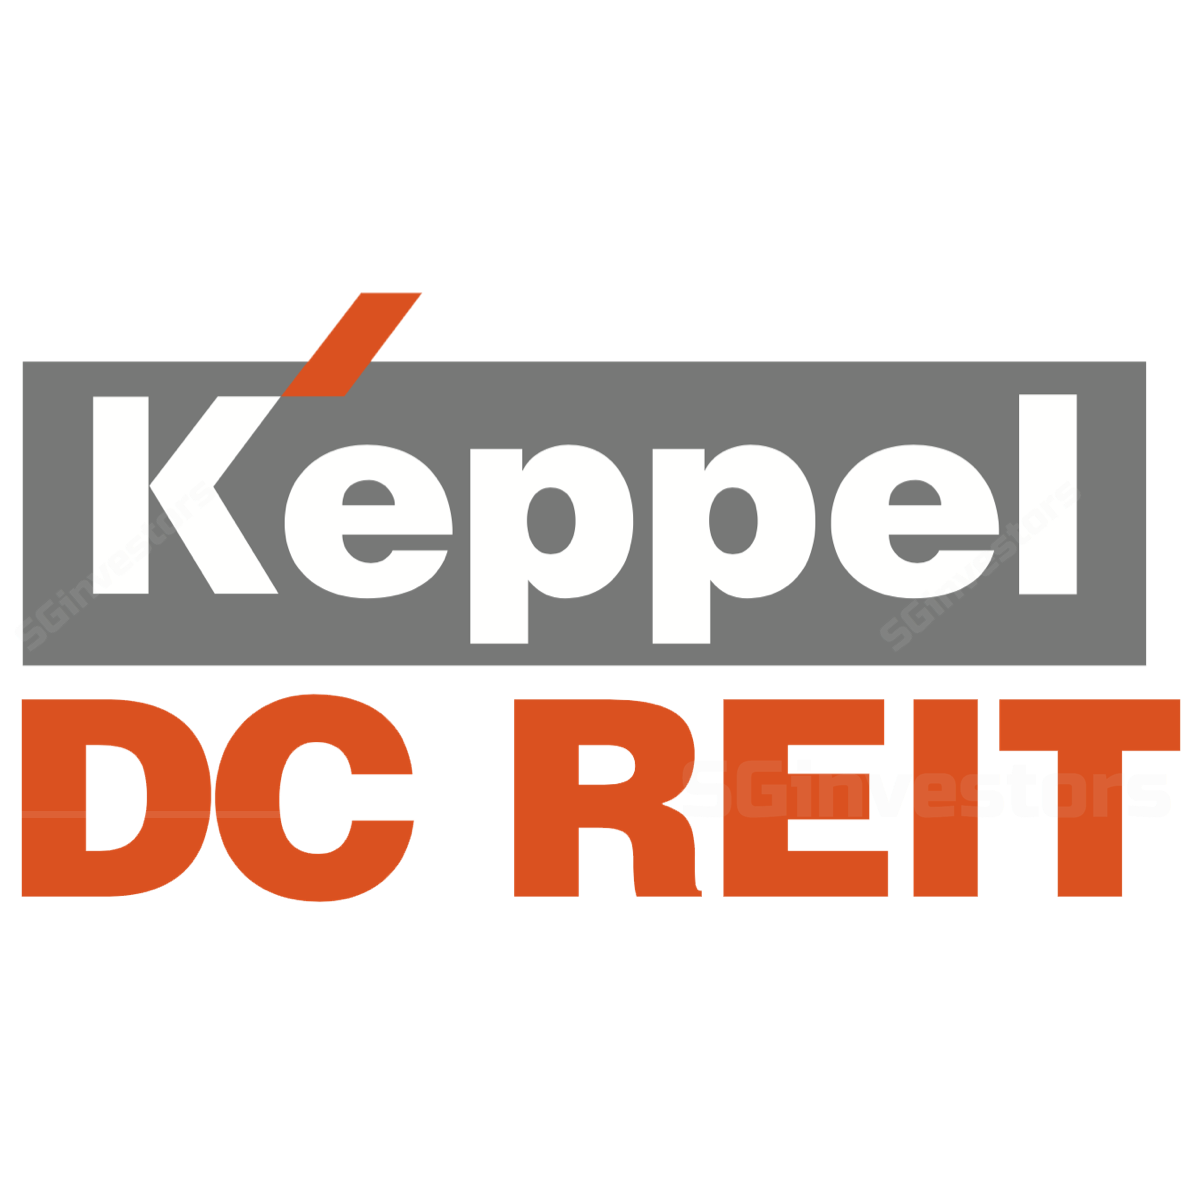 Keppel DC REIT - DBS Vickers 2018-04-17: Acquisitions To Drive Earnings Growth Momentum